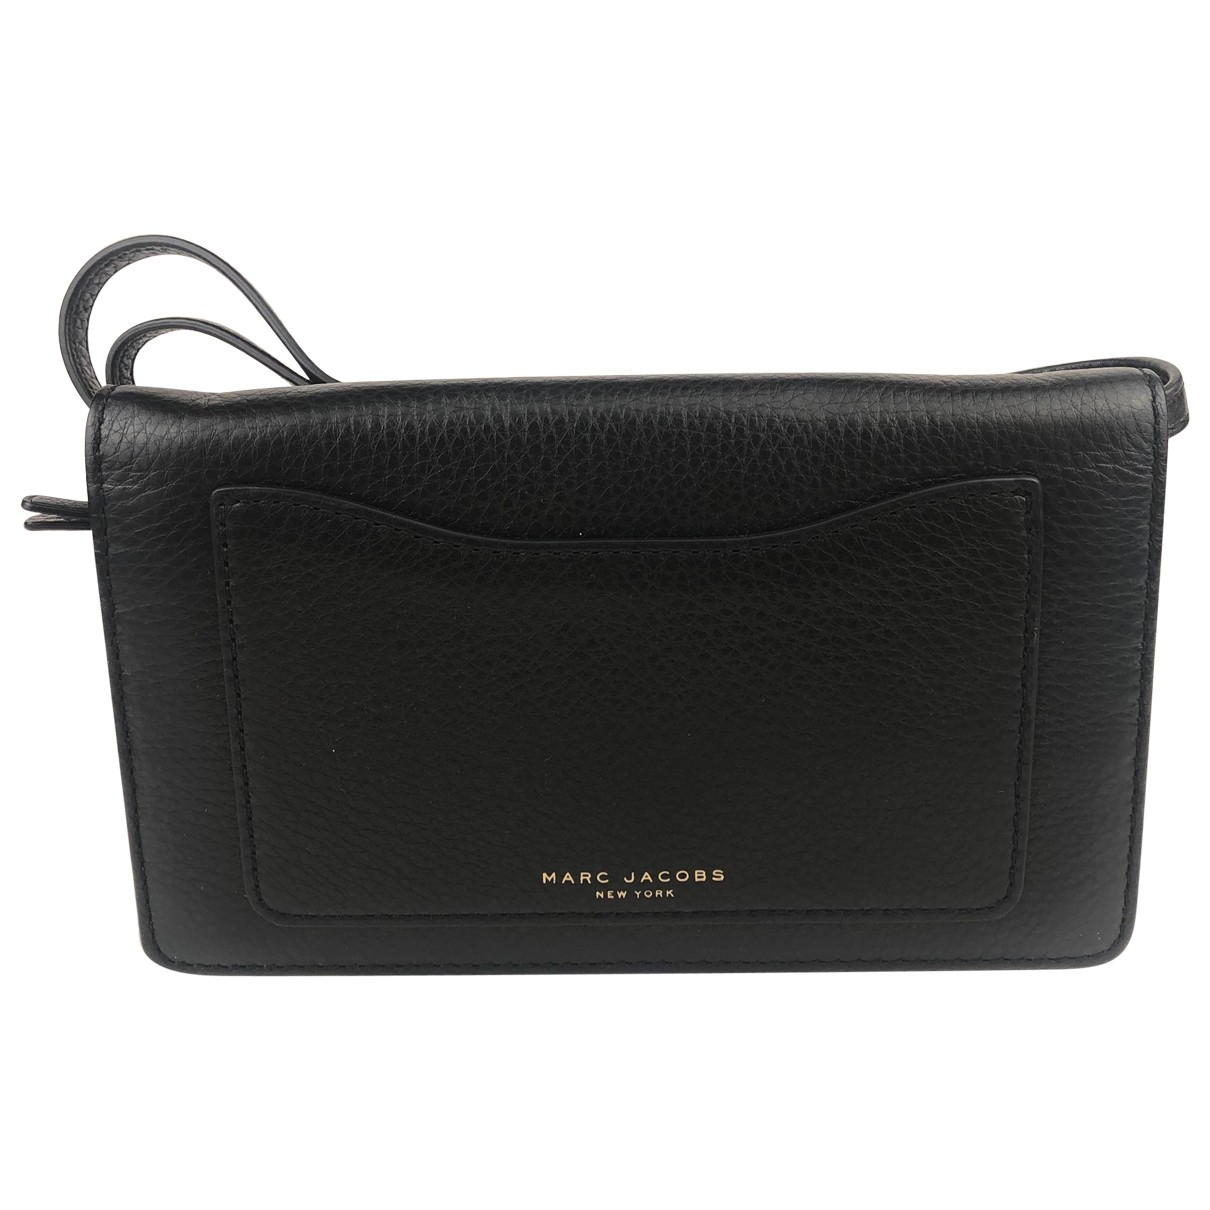 Marc Jacobs N Black Leather wallet for Women N